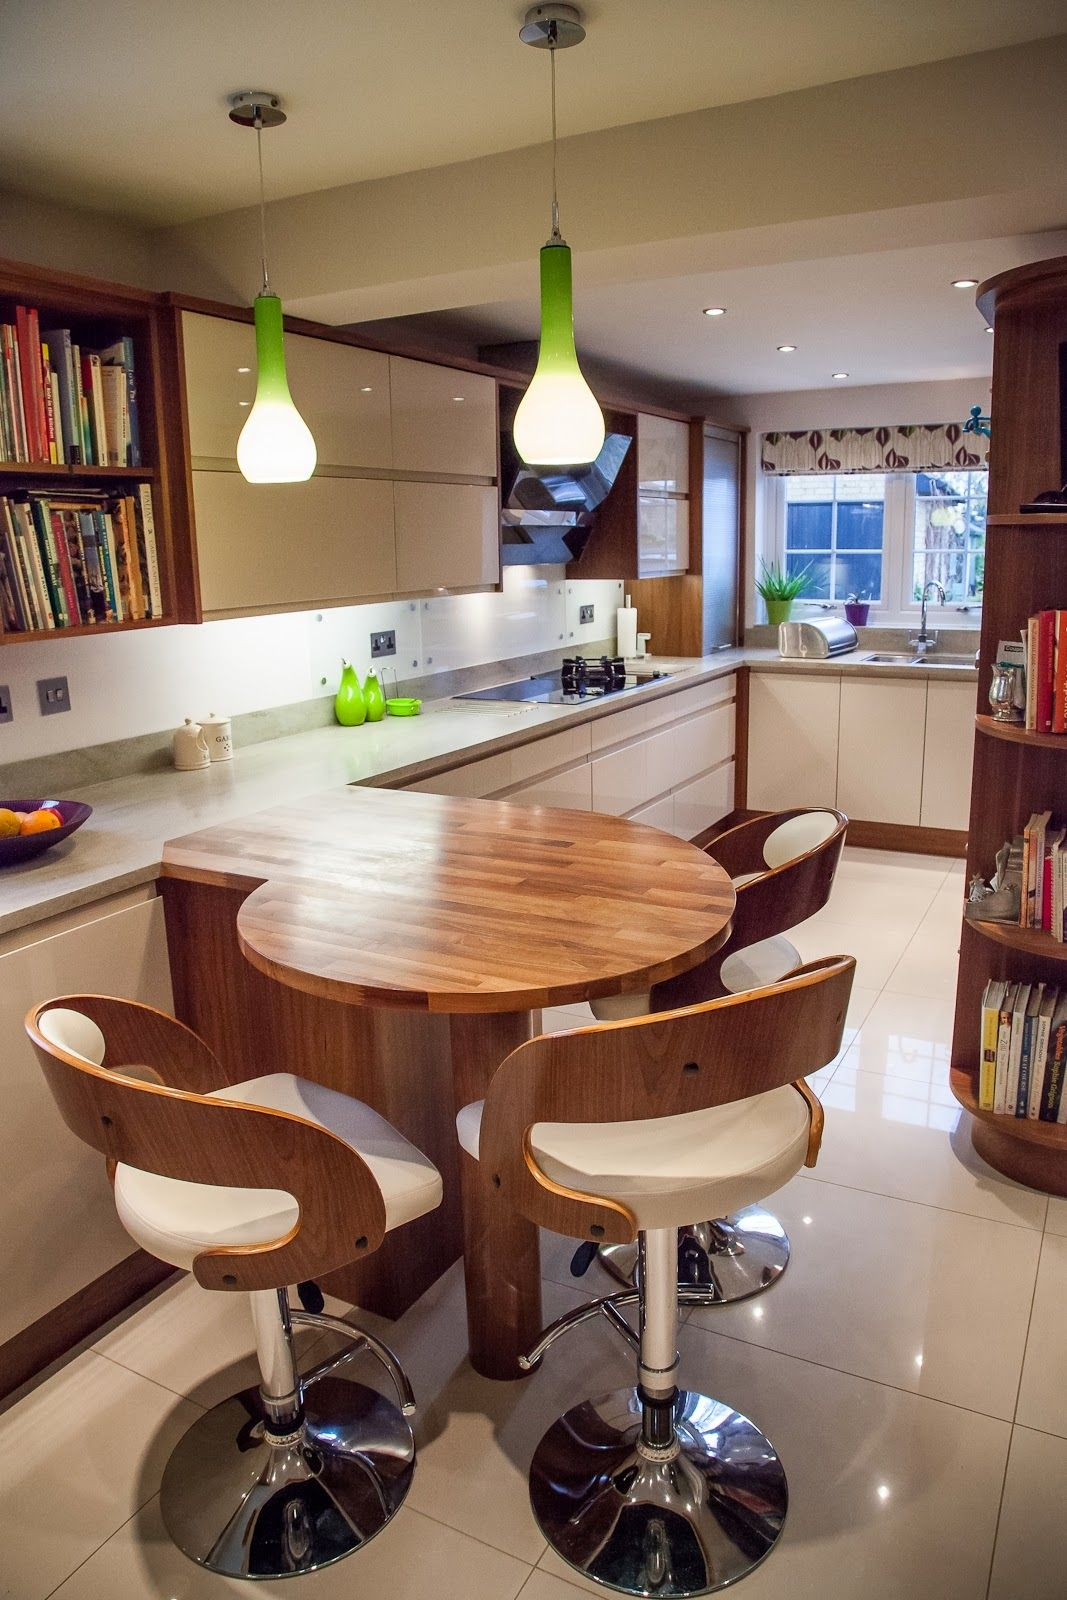 Kitchen Designs With Breakfast Bar Wooden Round Breakfast Bar Situating Under Lime Green